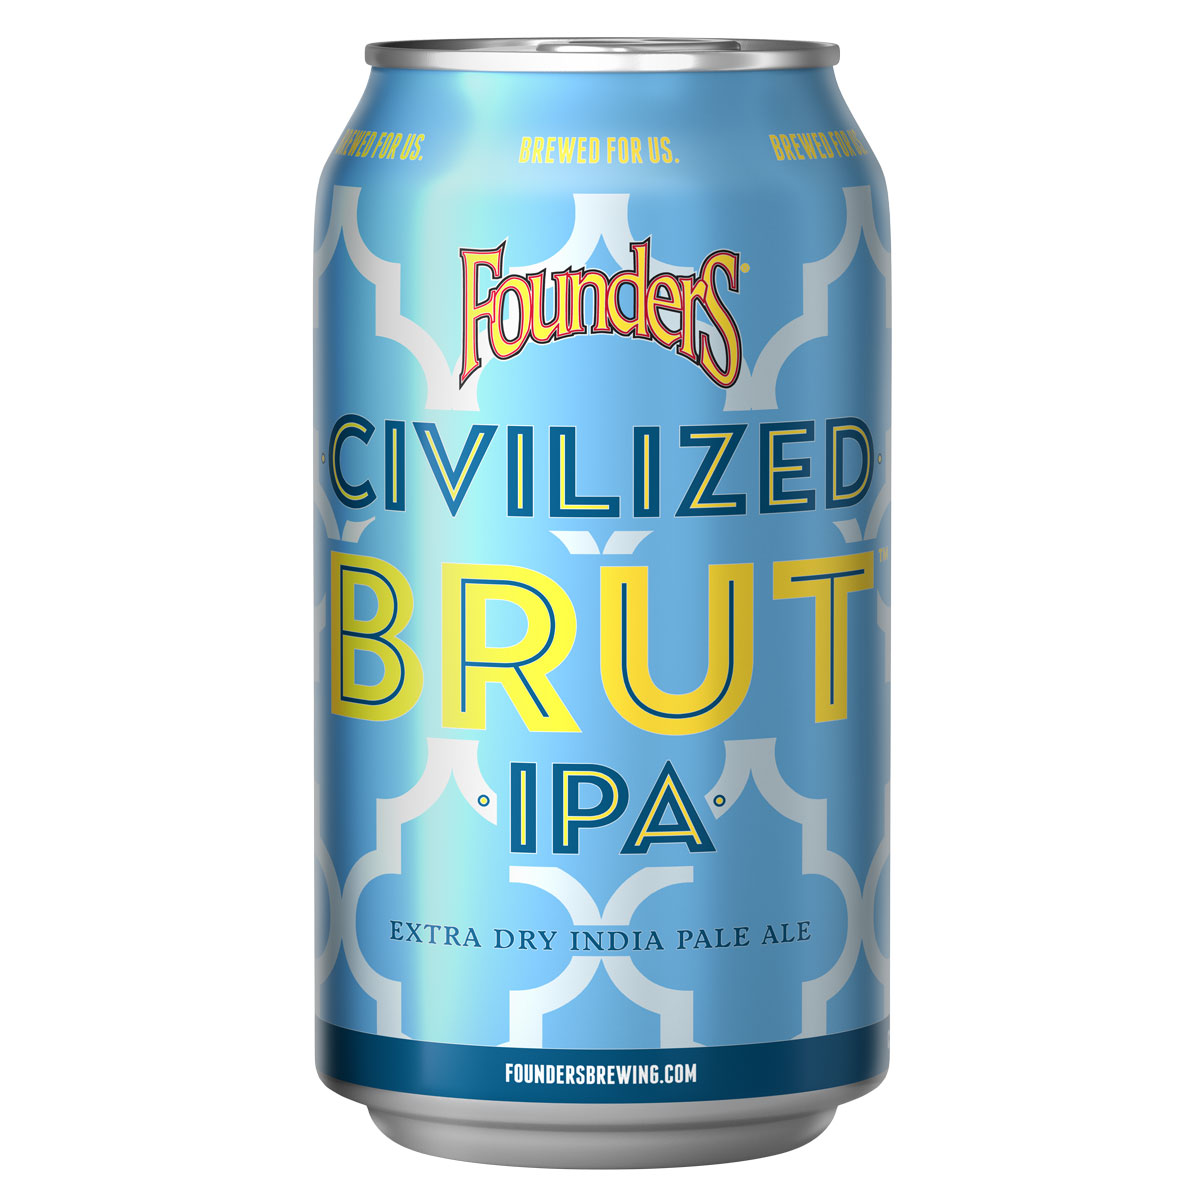 Can of Founders Civilized Brut IPA